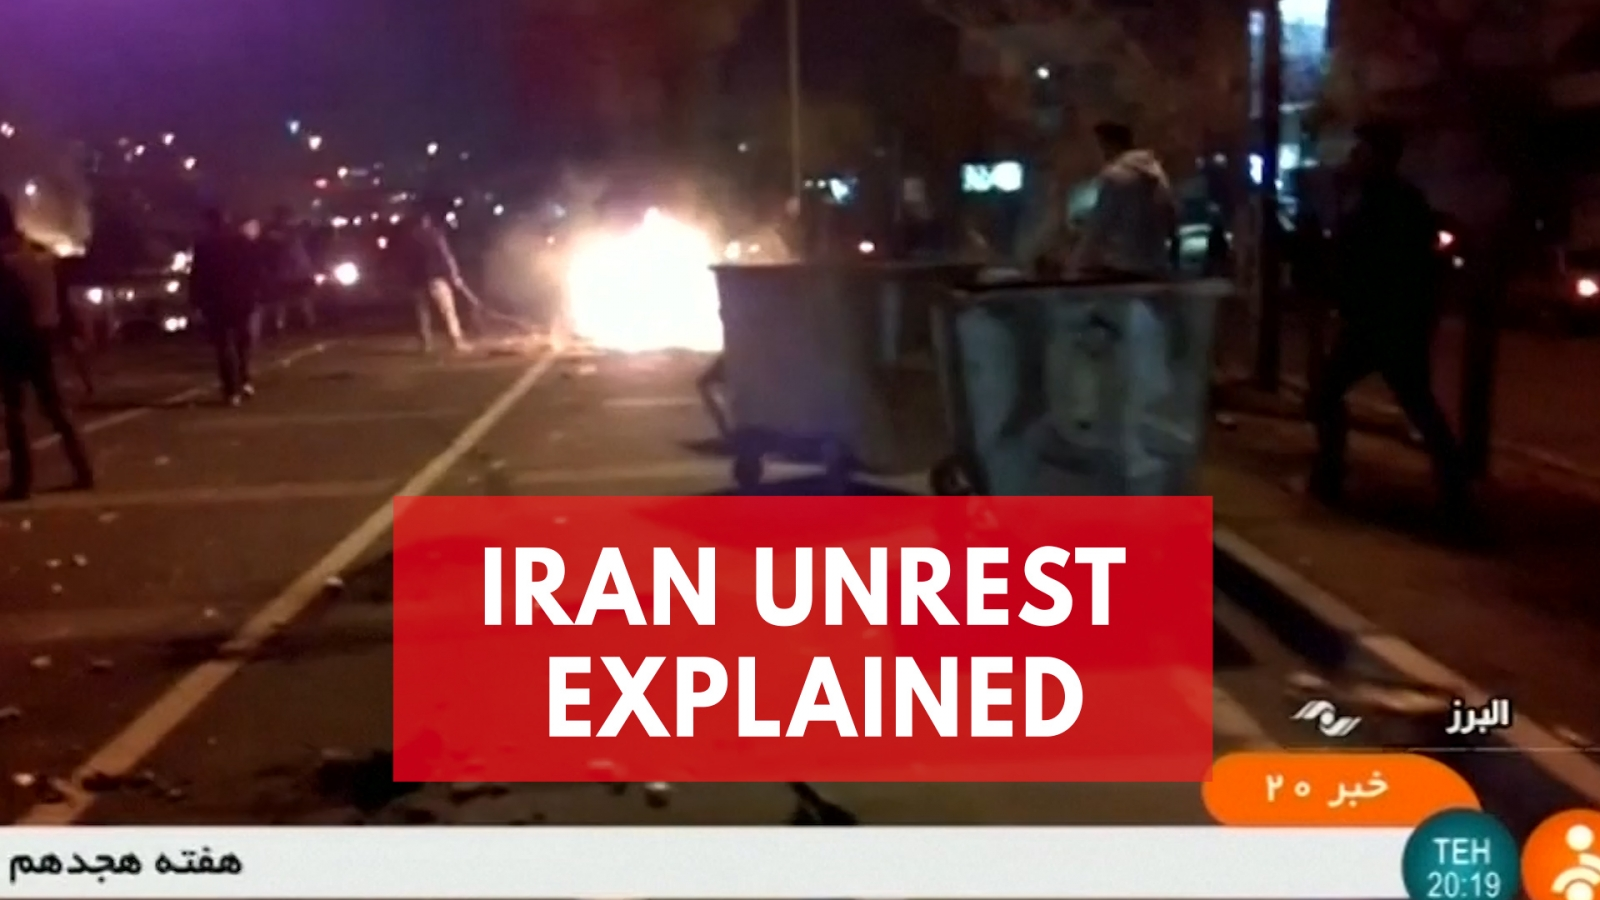 Iran Protests Explained: Death Toll Mounts As Anti-Government Rallies Reach Day 5